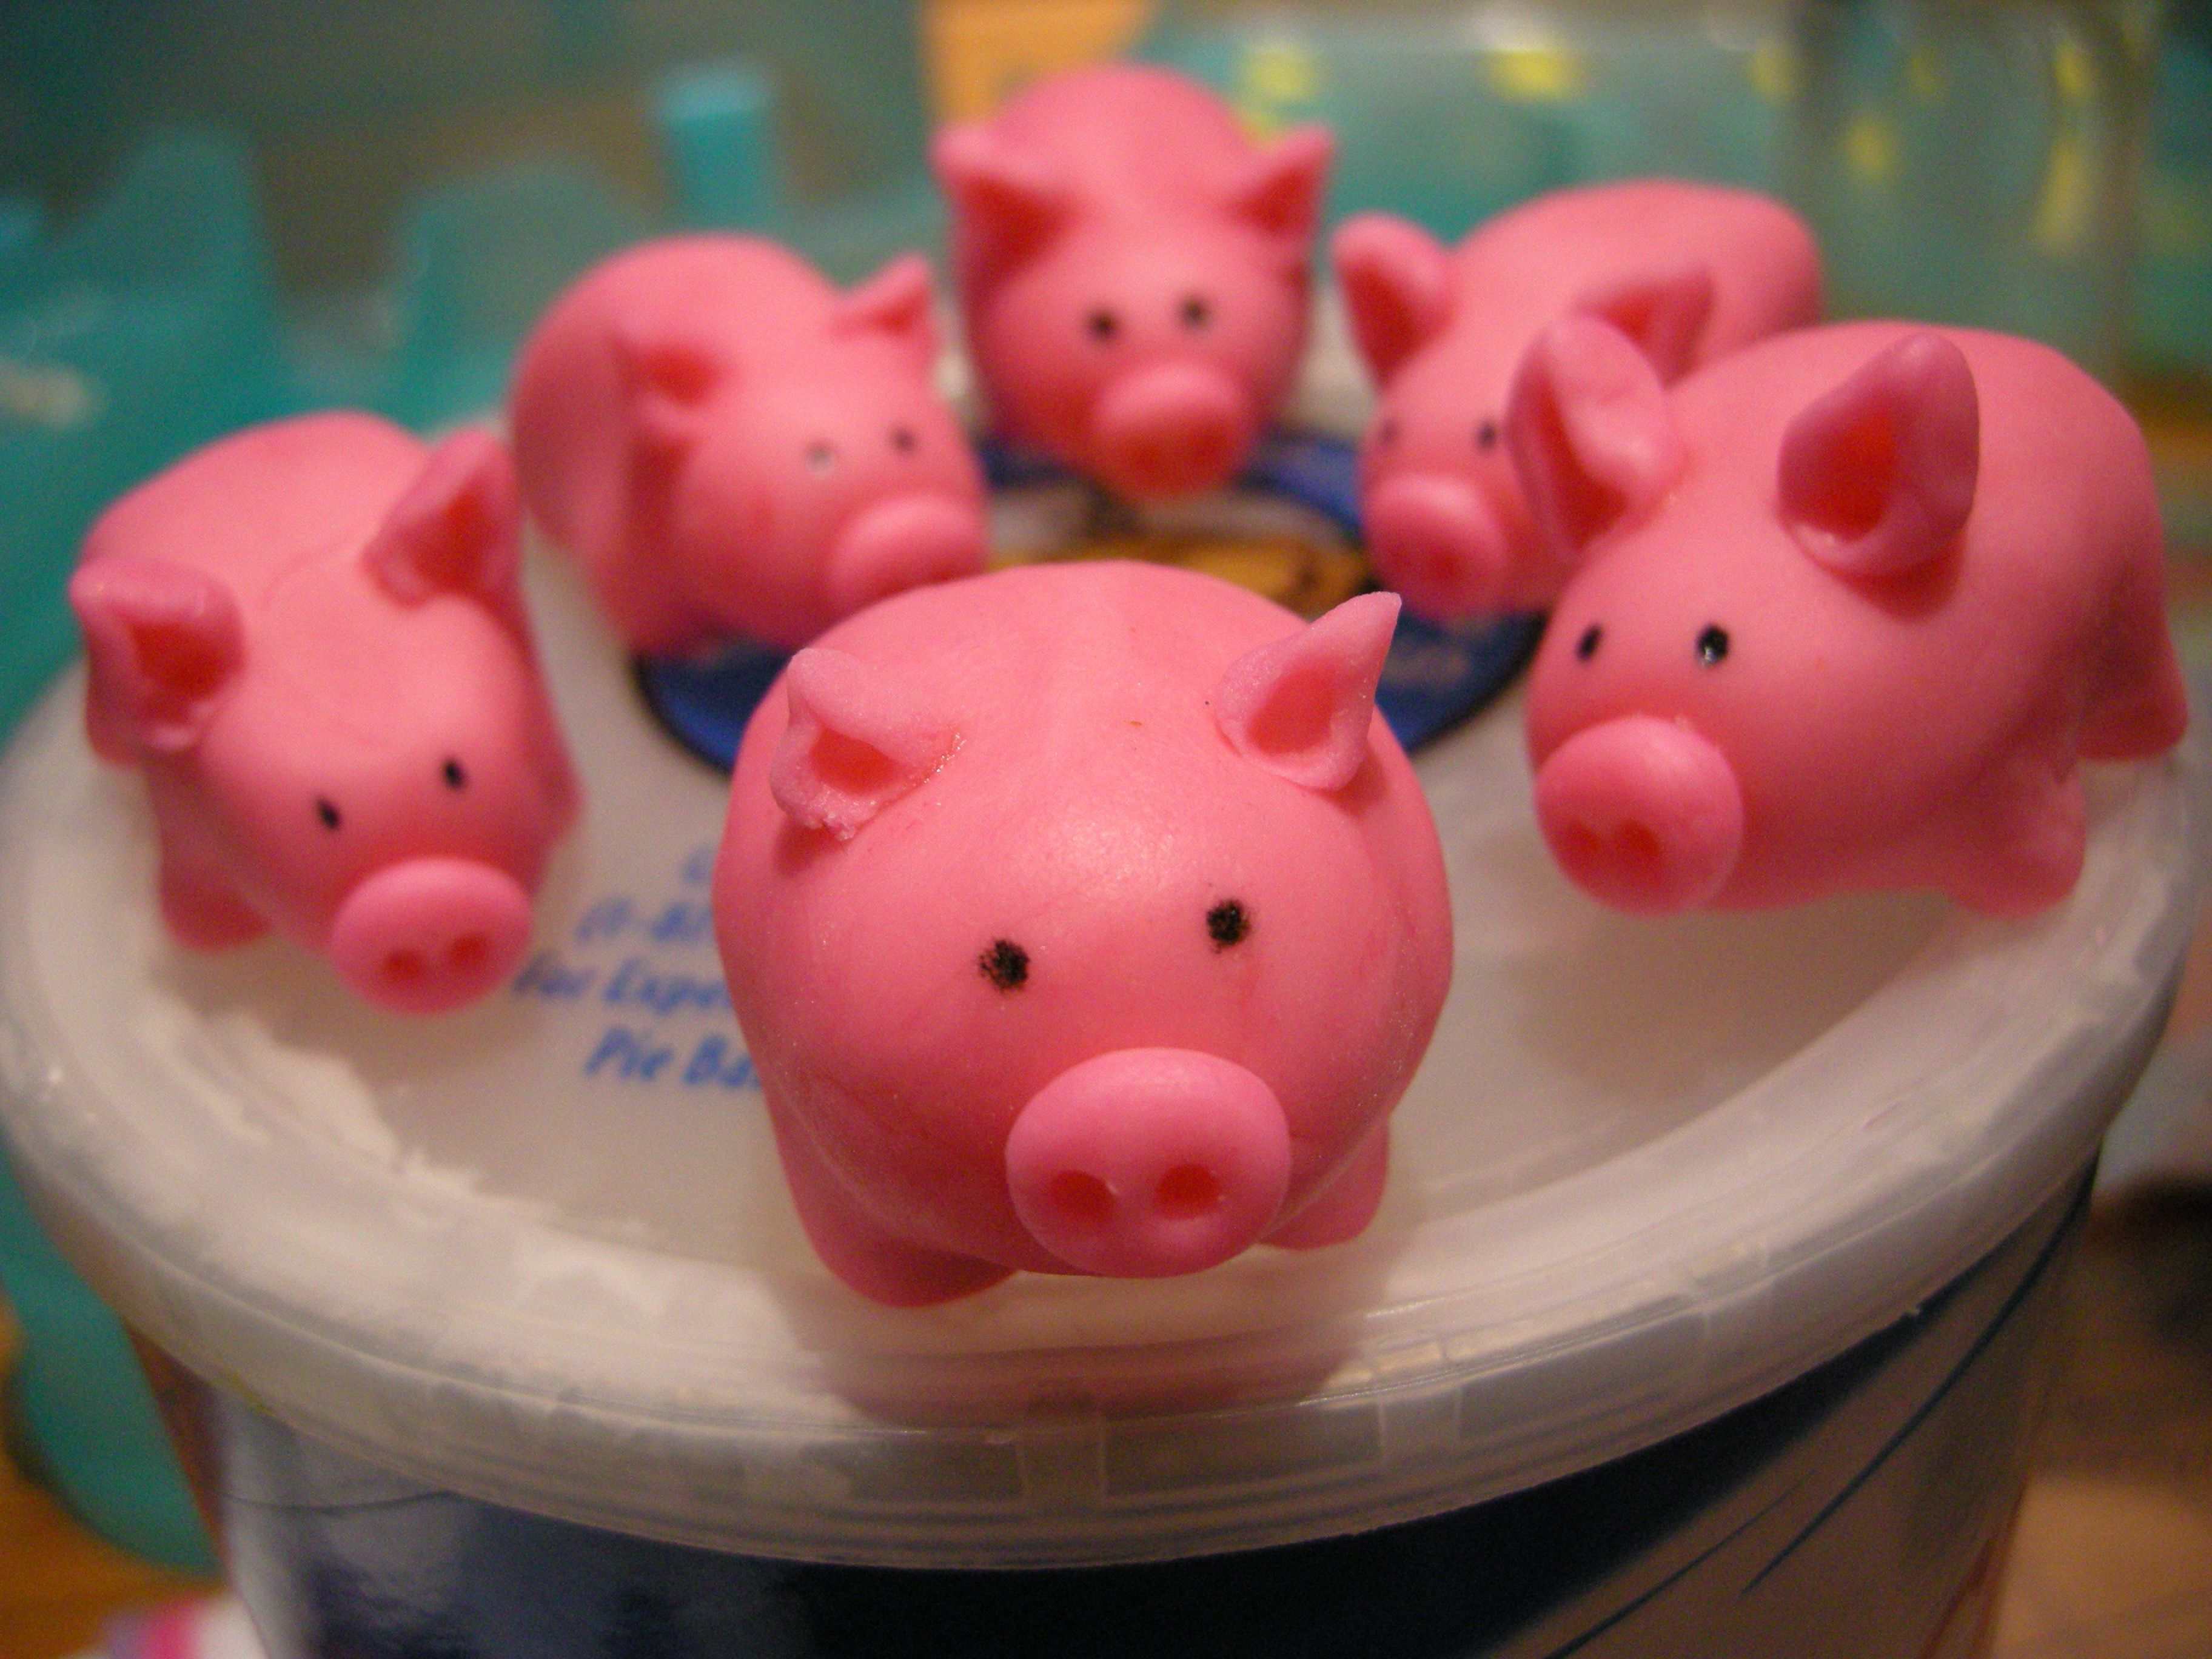 Fondant pigs on top of a tub of Crisco.  It's like home to them.